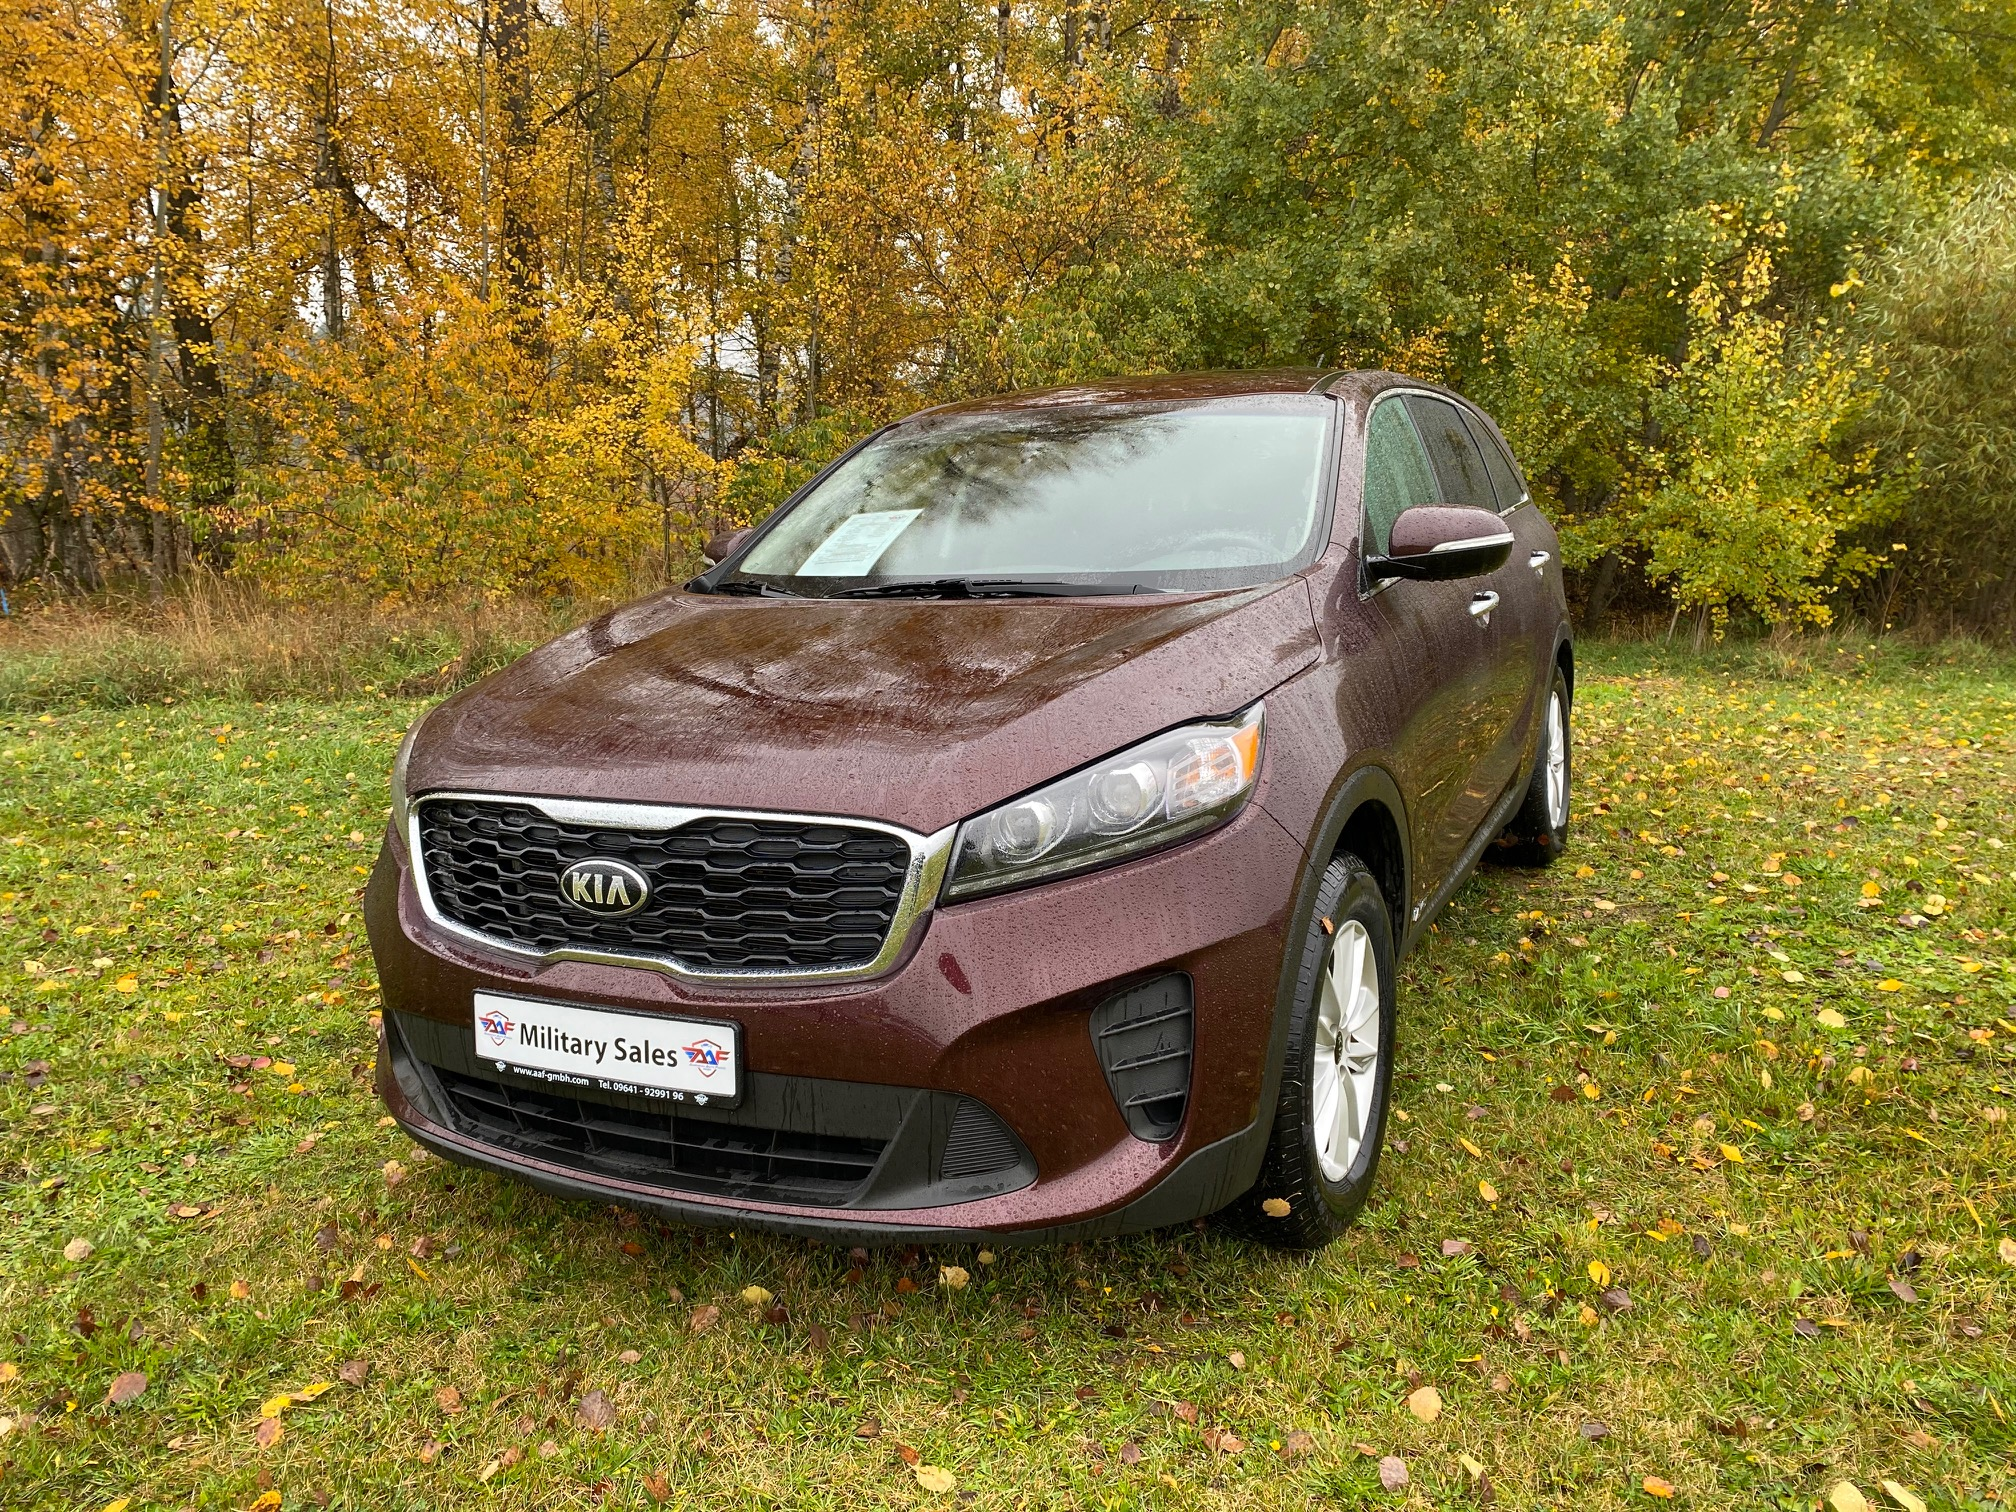 *New Arrival* </br>2019 Kia Sorento LX </br>as low as </br>$189 per paycheck